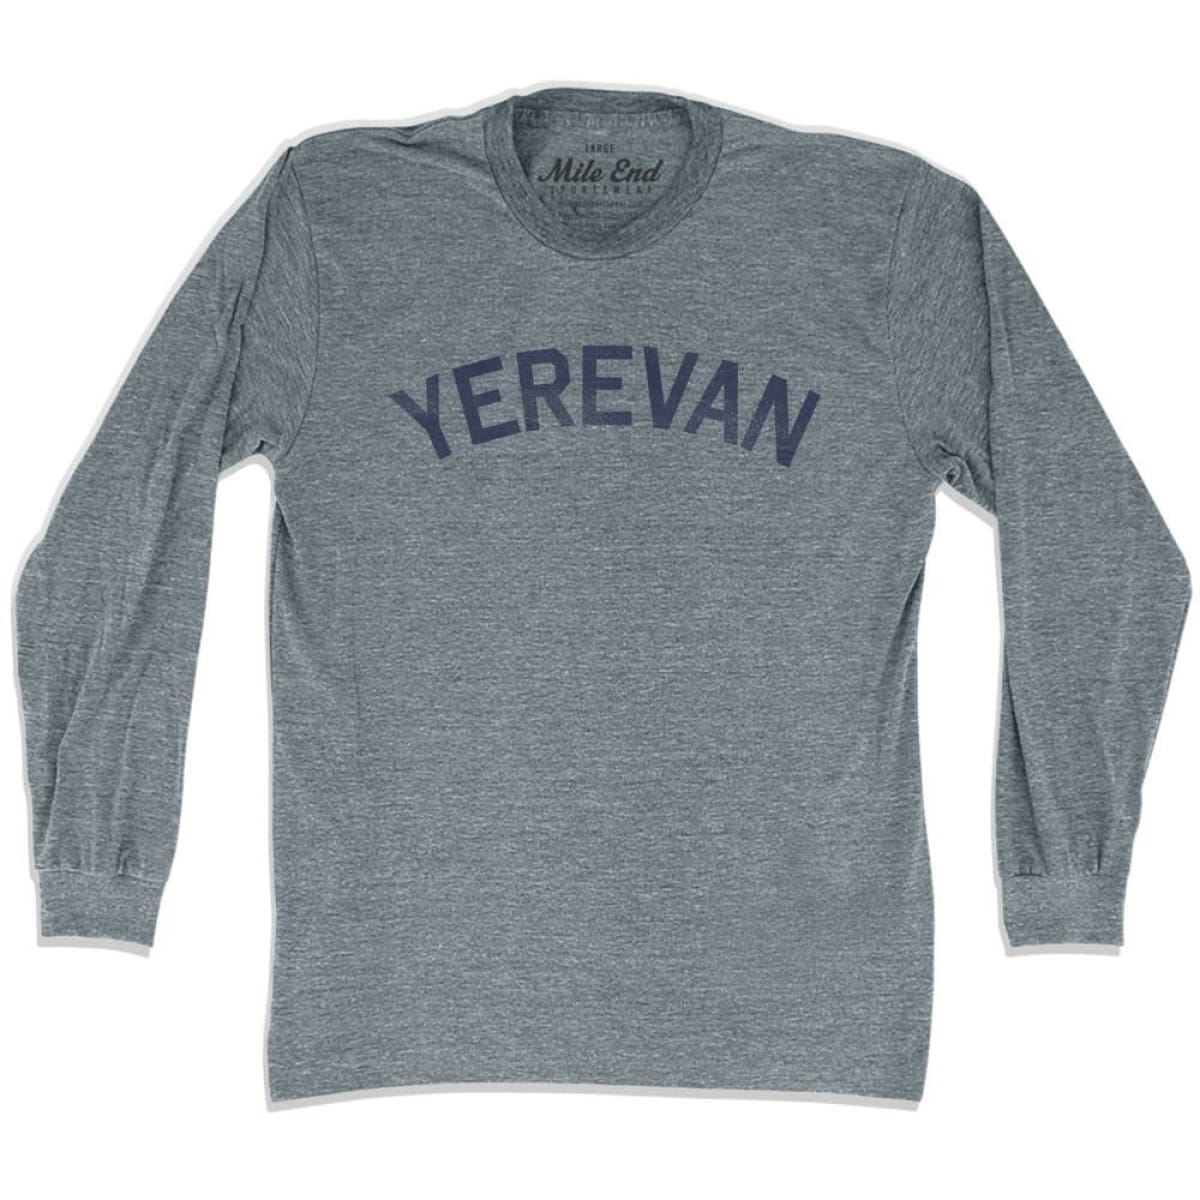 Yerevan City Vintage Long Sleeve T-shirt - Athletic Grey / Adult X-Small - Mile End City